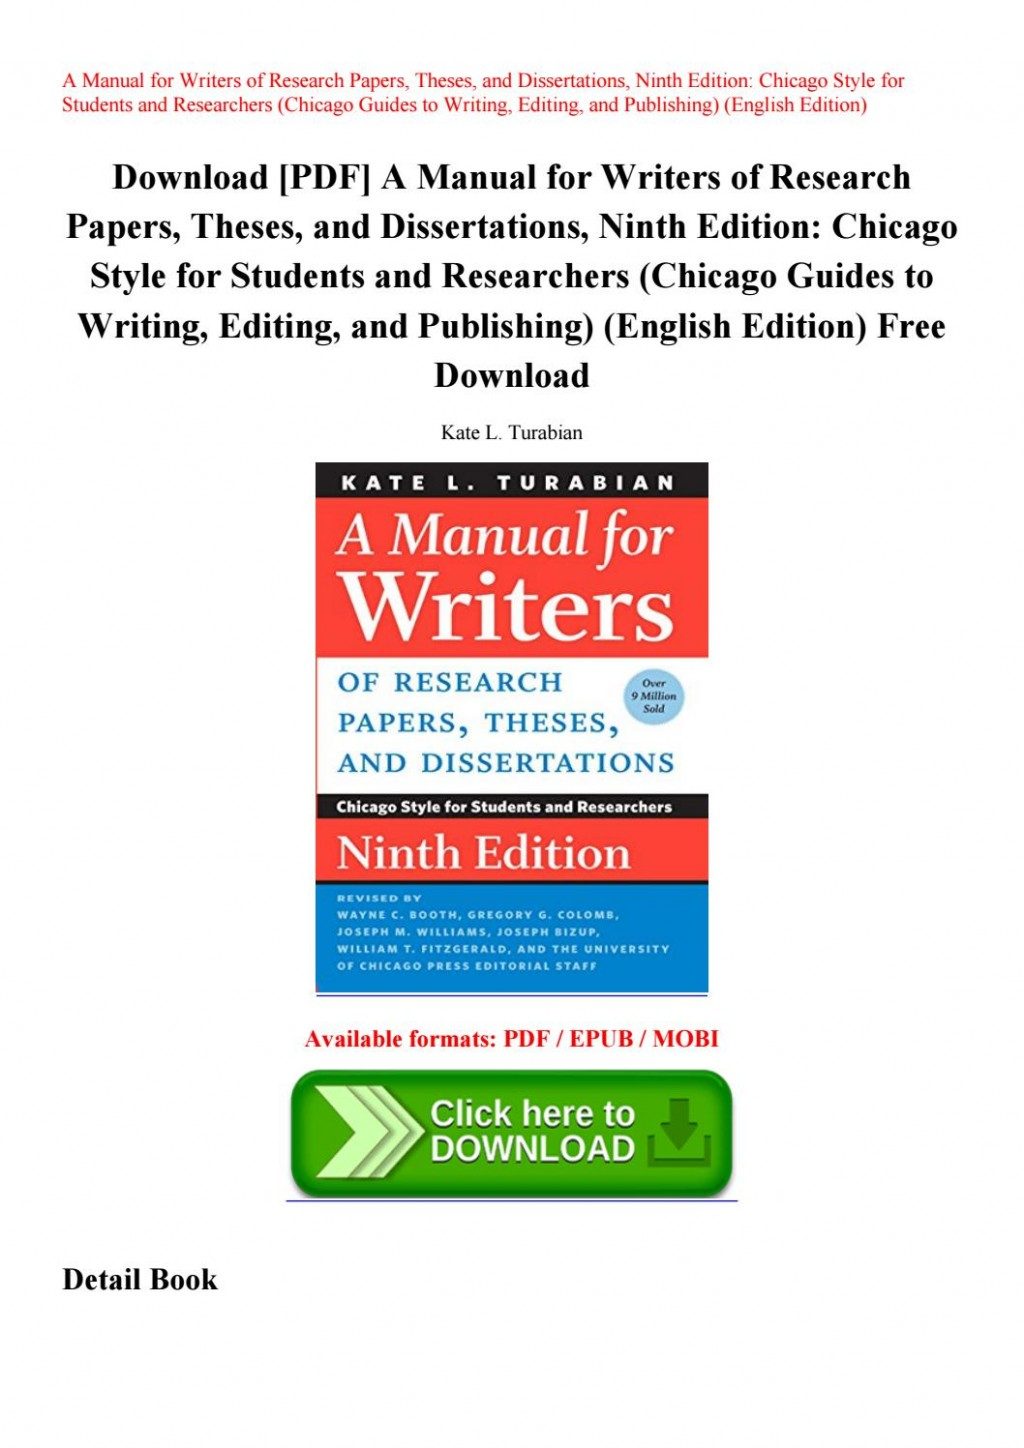 003 Manual For Writers Of Research Papers Theses And Dissertations 9th Edition Pdf Paper Page 1 Wonderful A Large